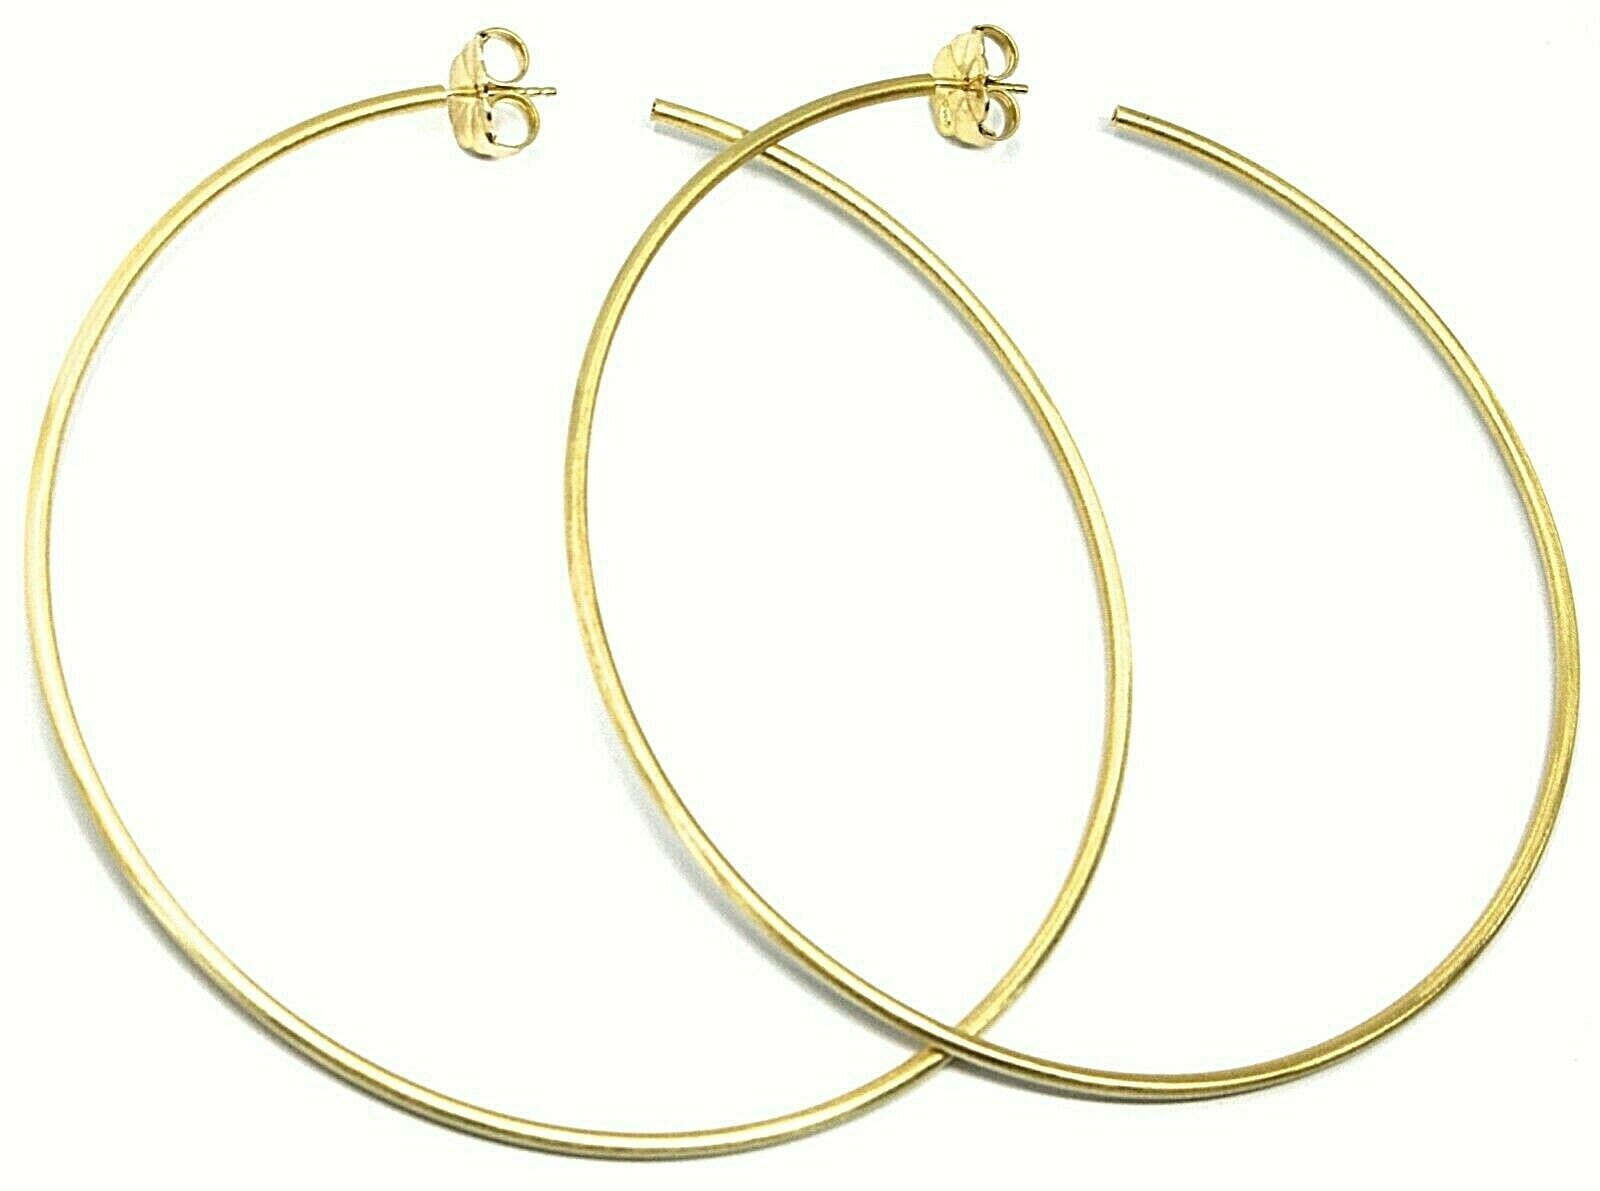 925 STERLING SILVER CIRCLE HOOPS BIG EARRINGS, 9.5cm x 2mm YELLOW SATIN FINISH